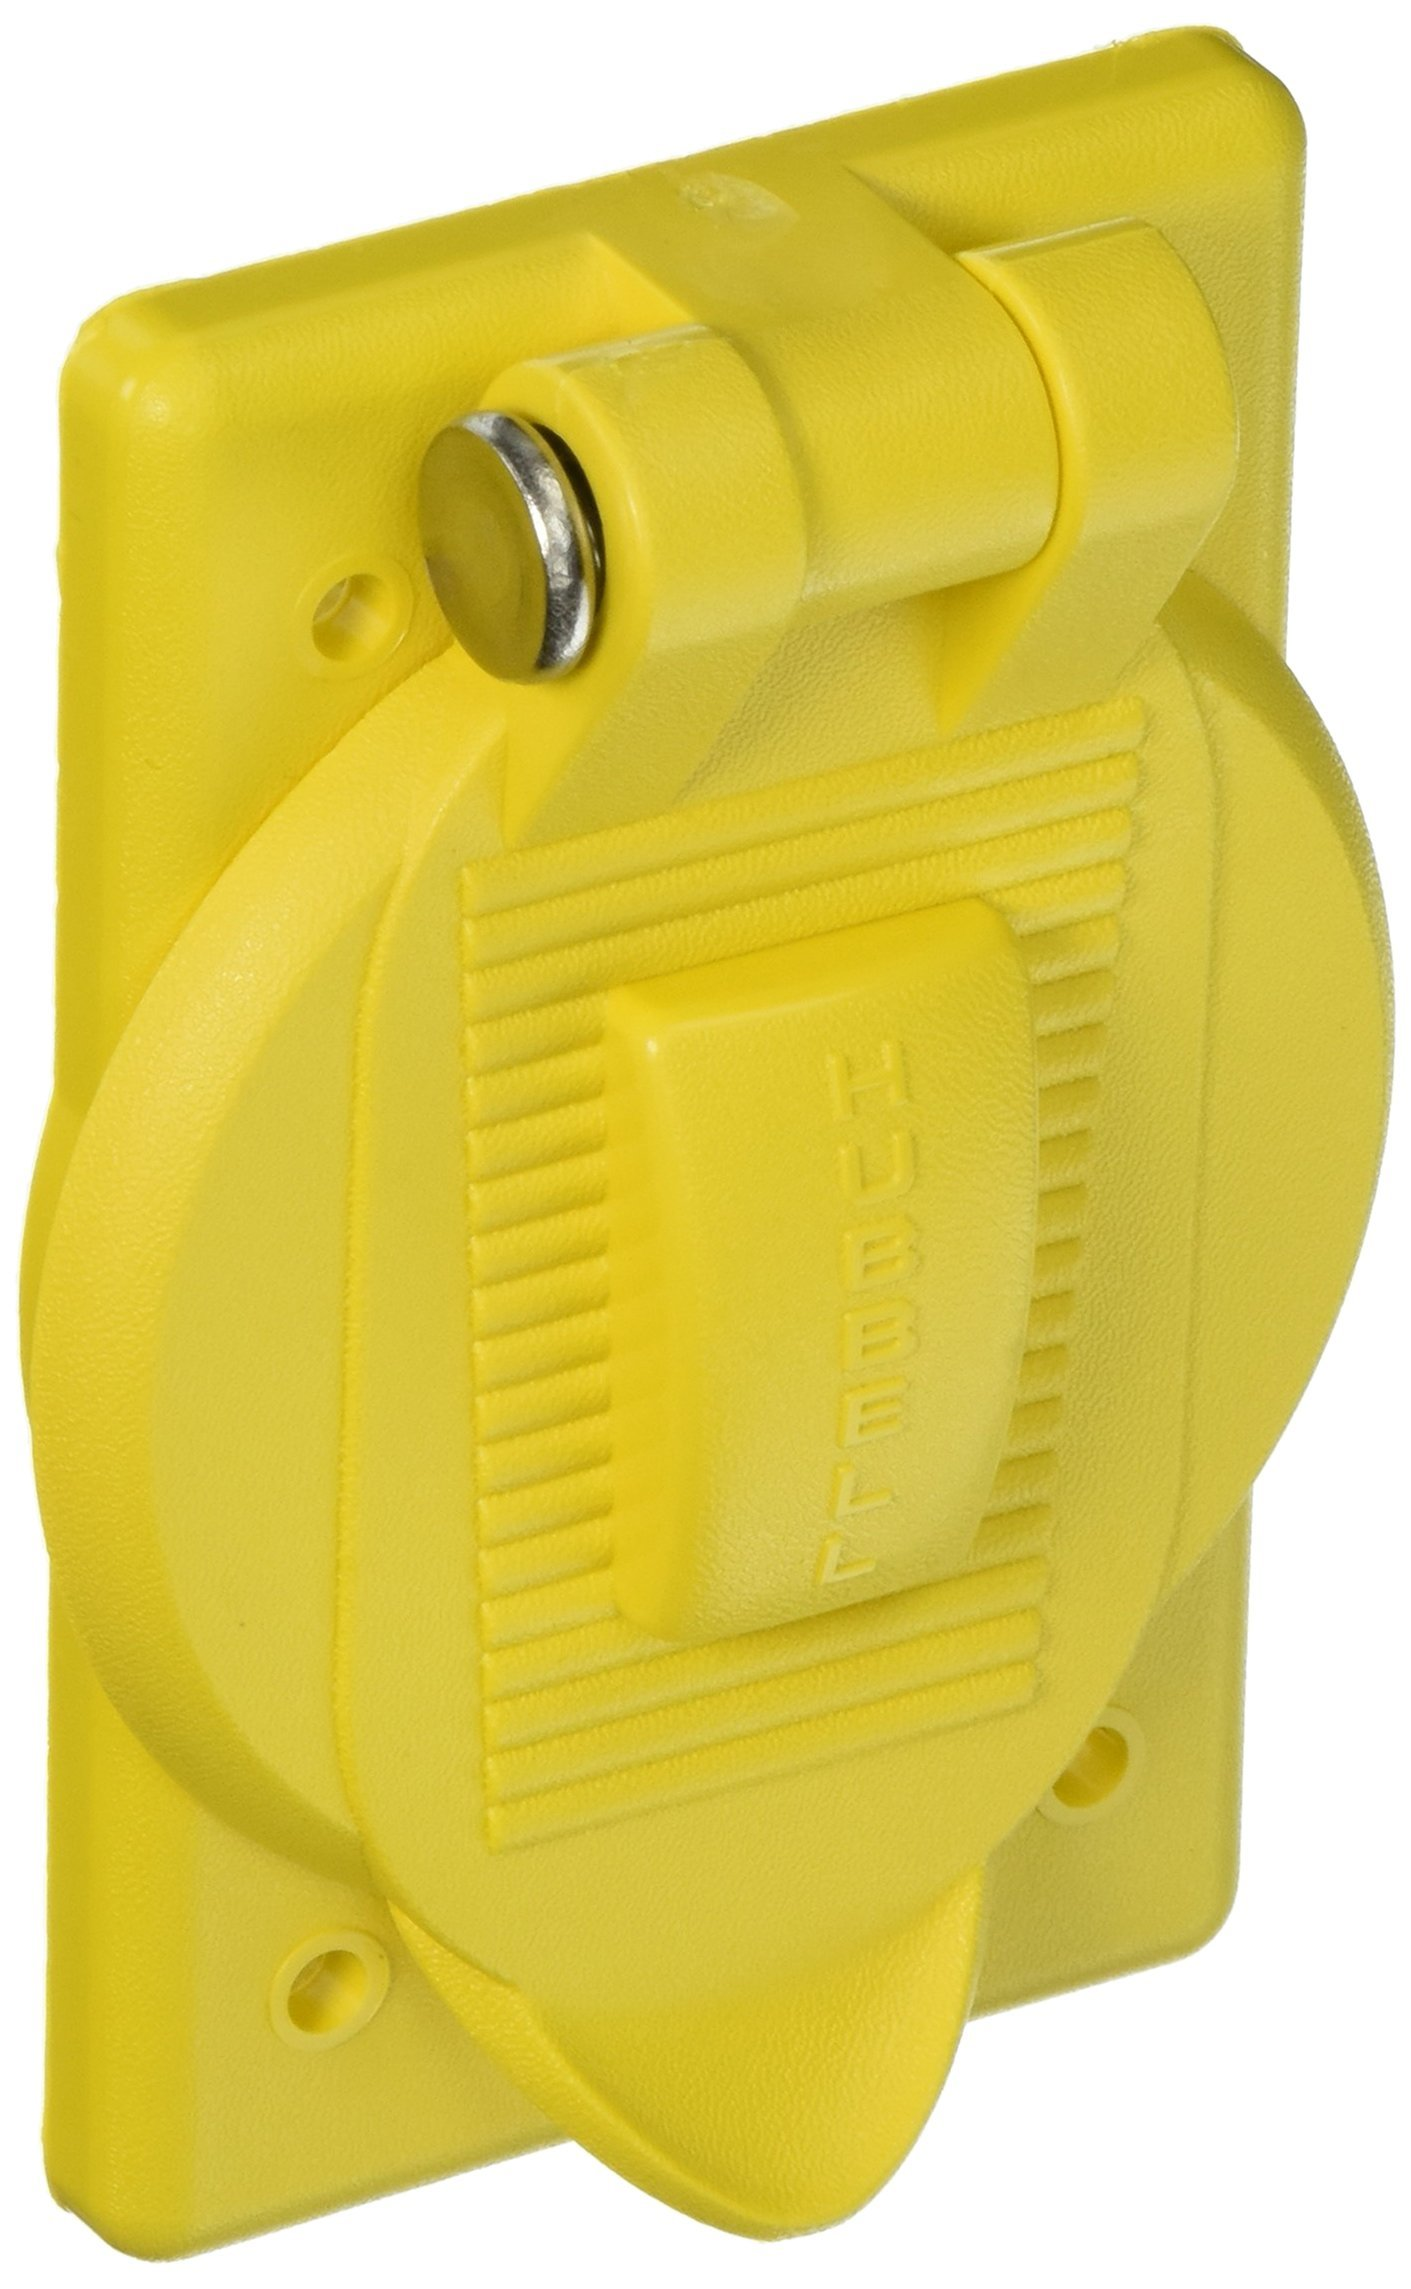 Hubbell Wiring Systems HBL74CM25WOA Ship-to-Shore Polycarbonate Spring-Loaded Lift Cover for HBL26CM10 Weather Proofing Receptacle, Yellow by Hubbell Wiring Systems